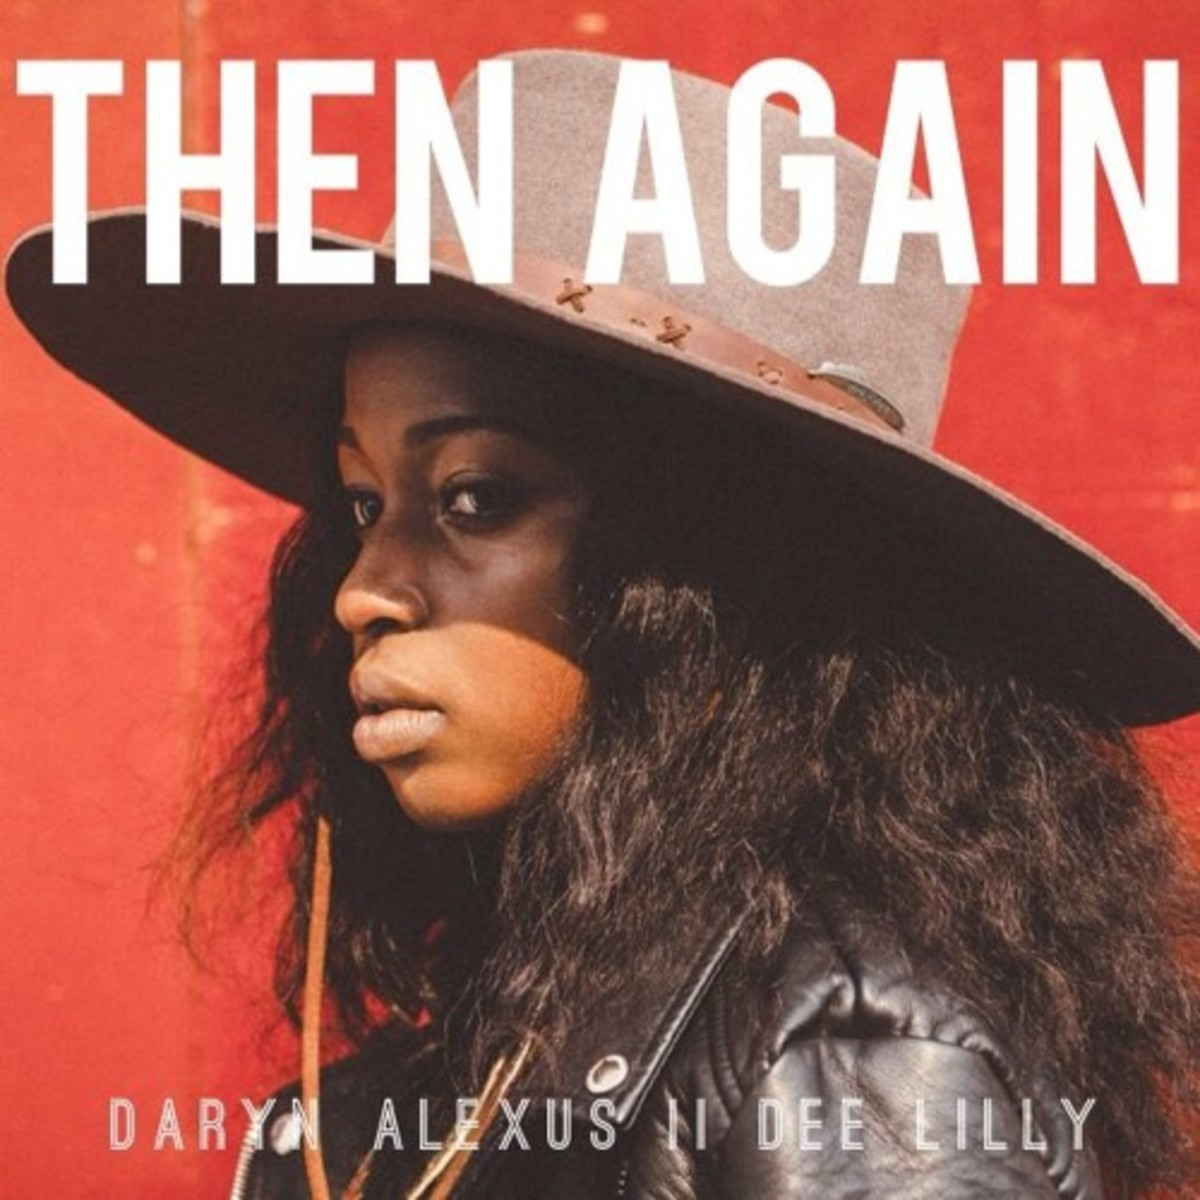 daryn-alexis-then-again.jpg